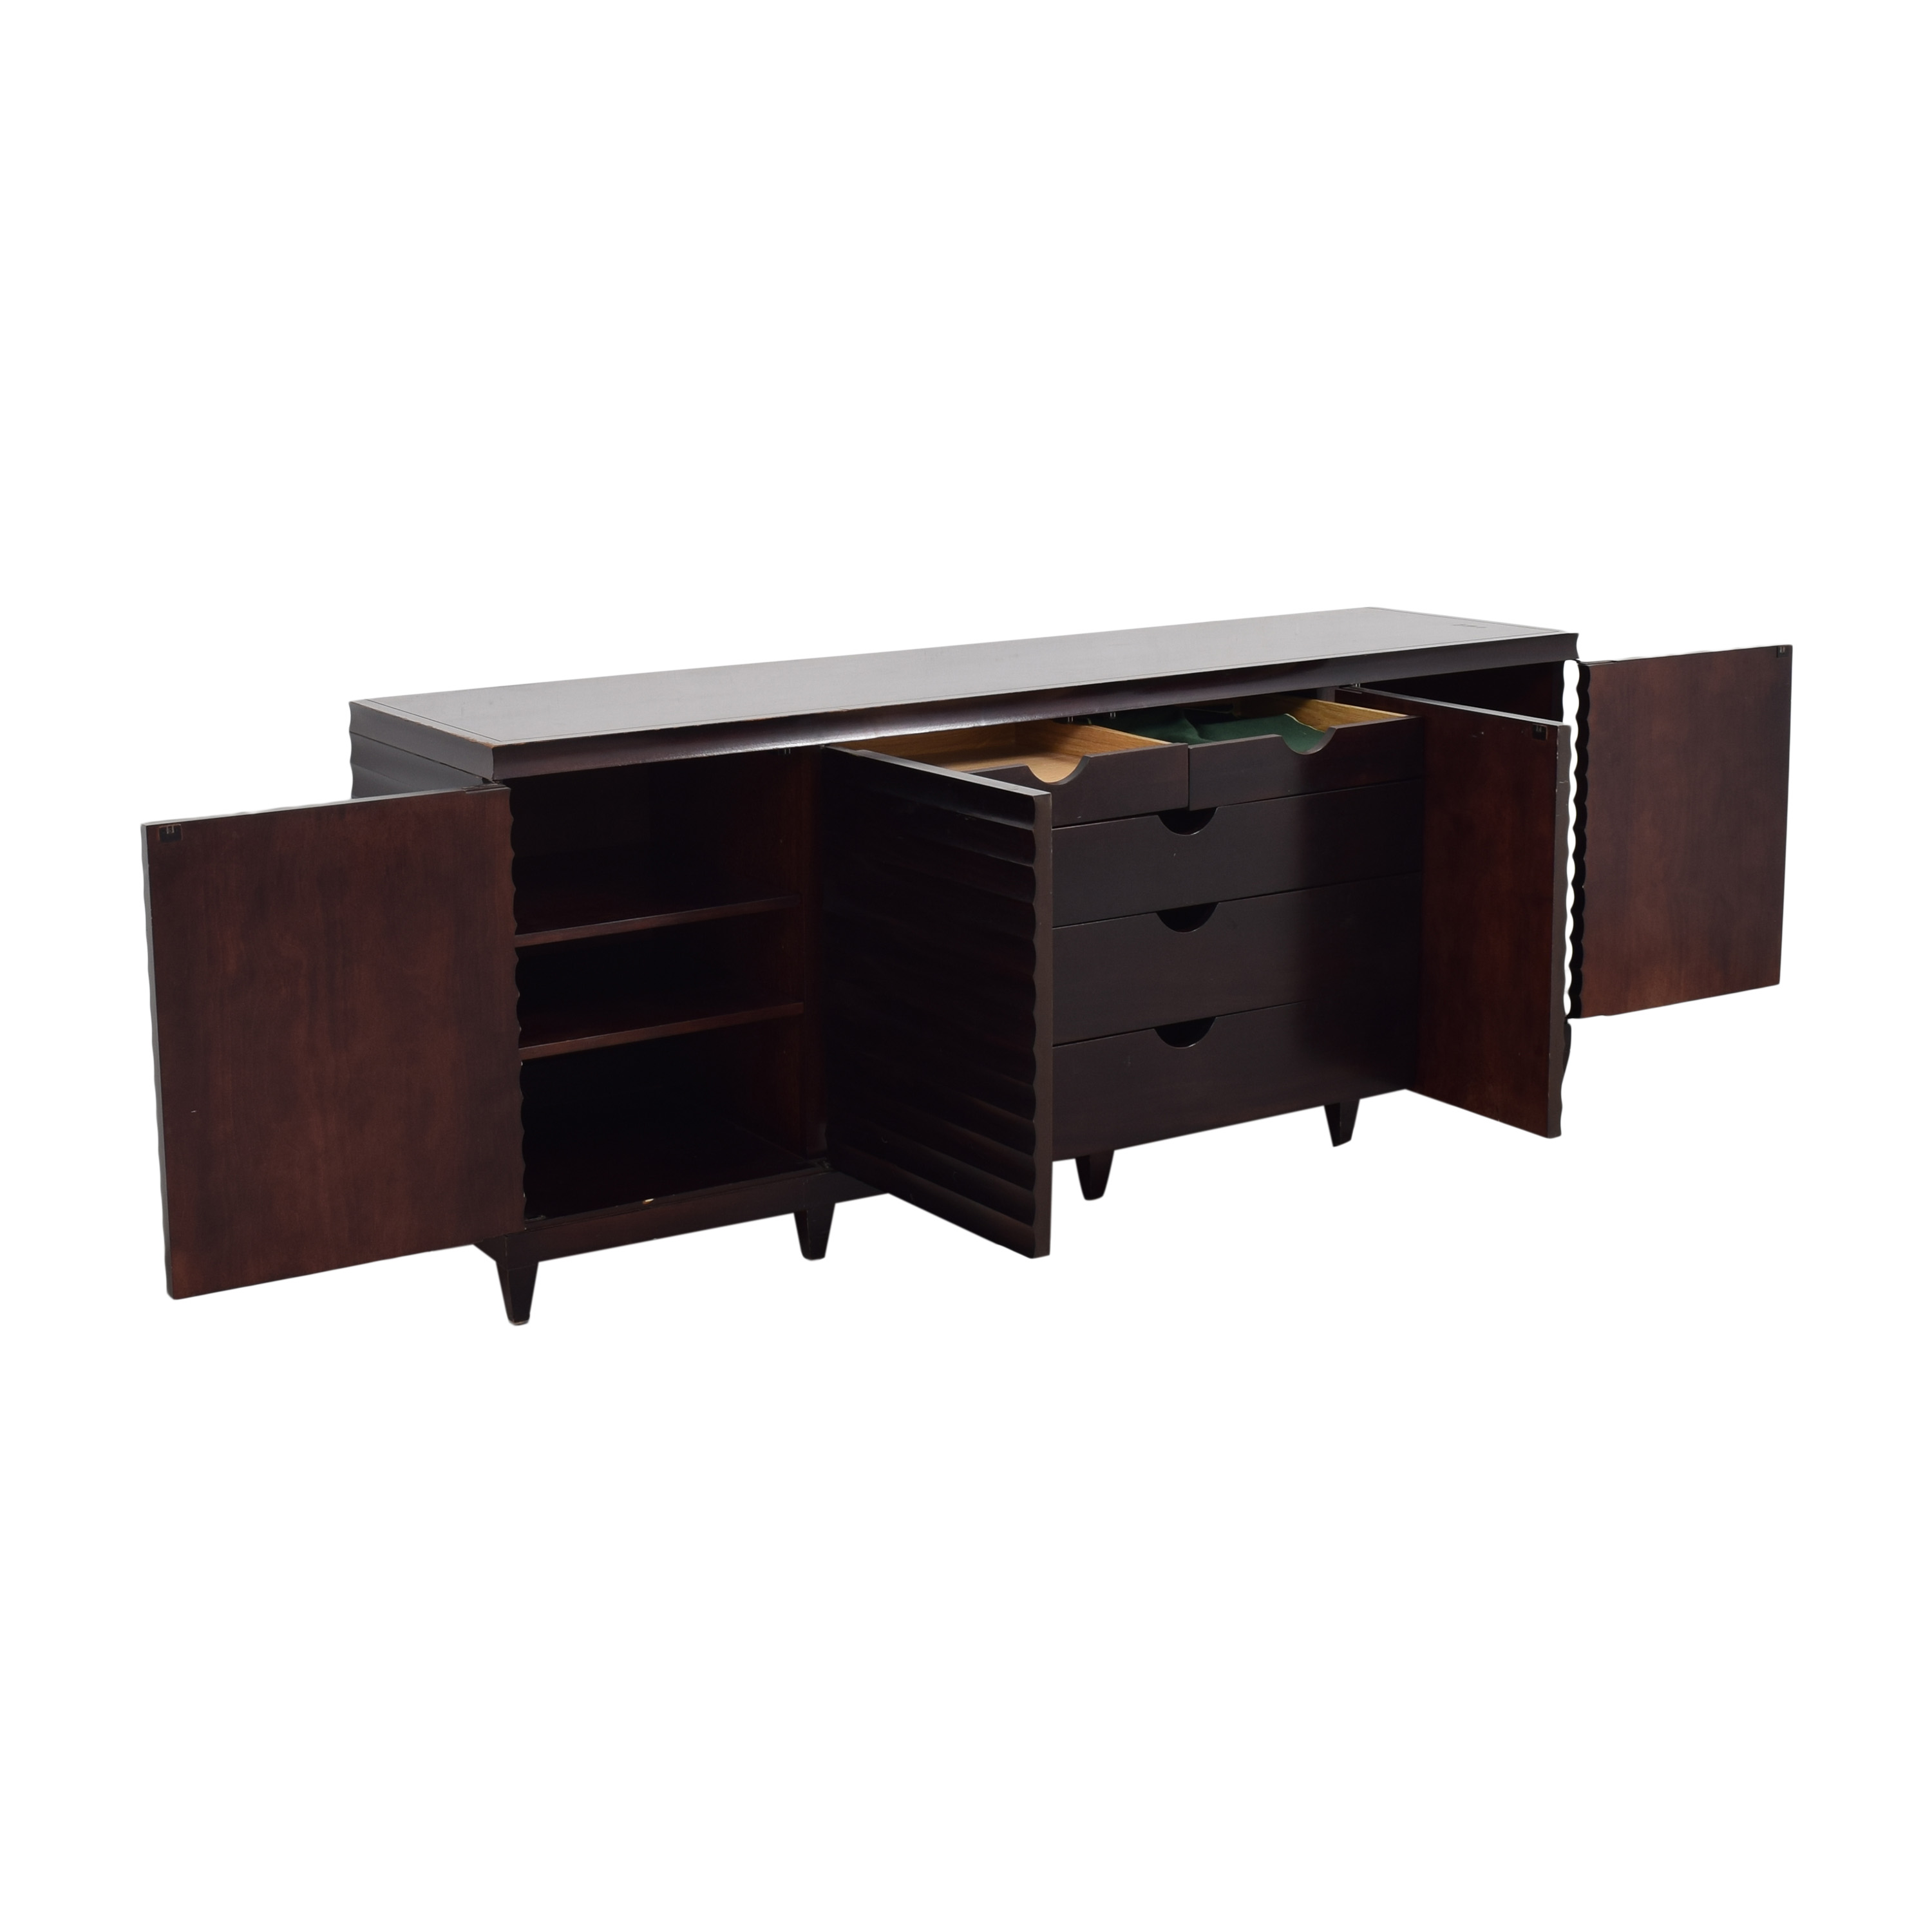 Baker Furniture Baker Furniture by Barbara Barry Fluted Low Cabinet price